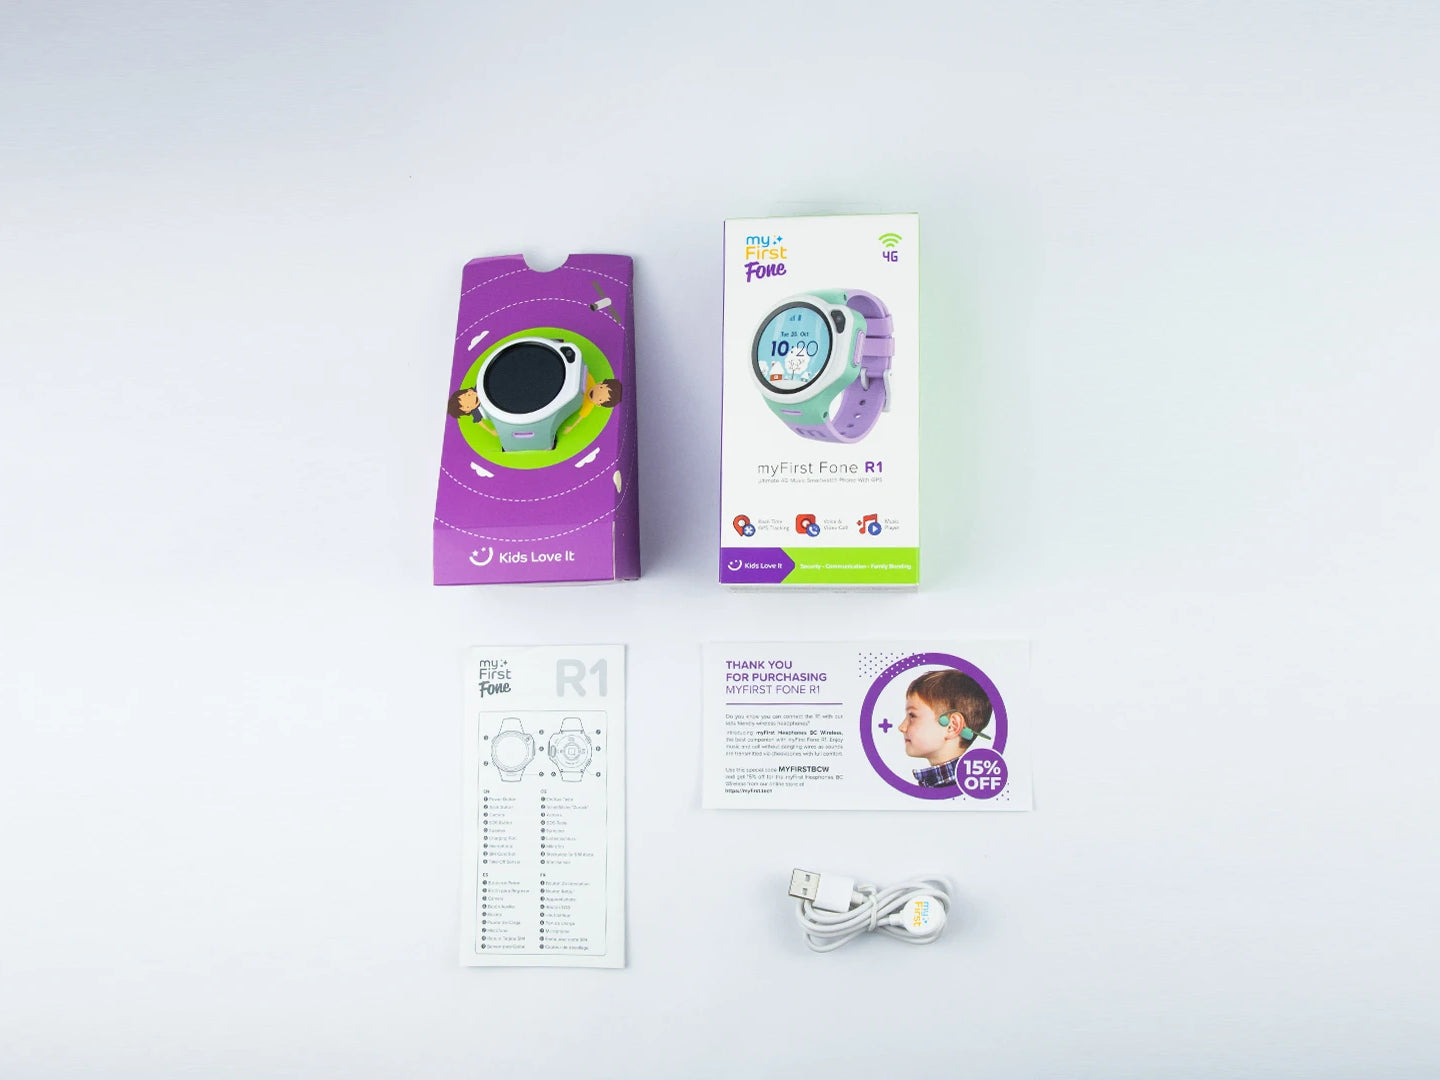 myFirst Fone R1 - Smart watch phone for kids with gps tracker Unboxing